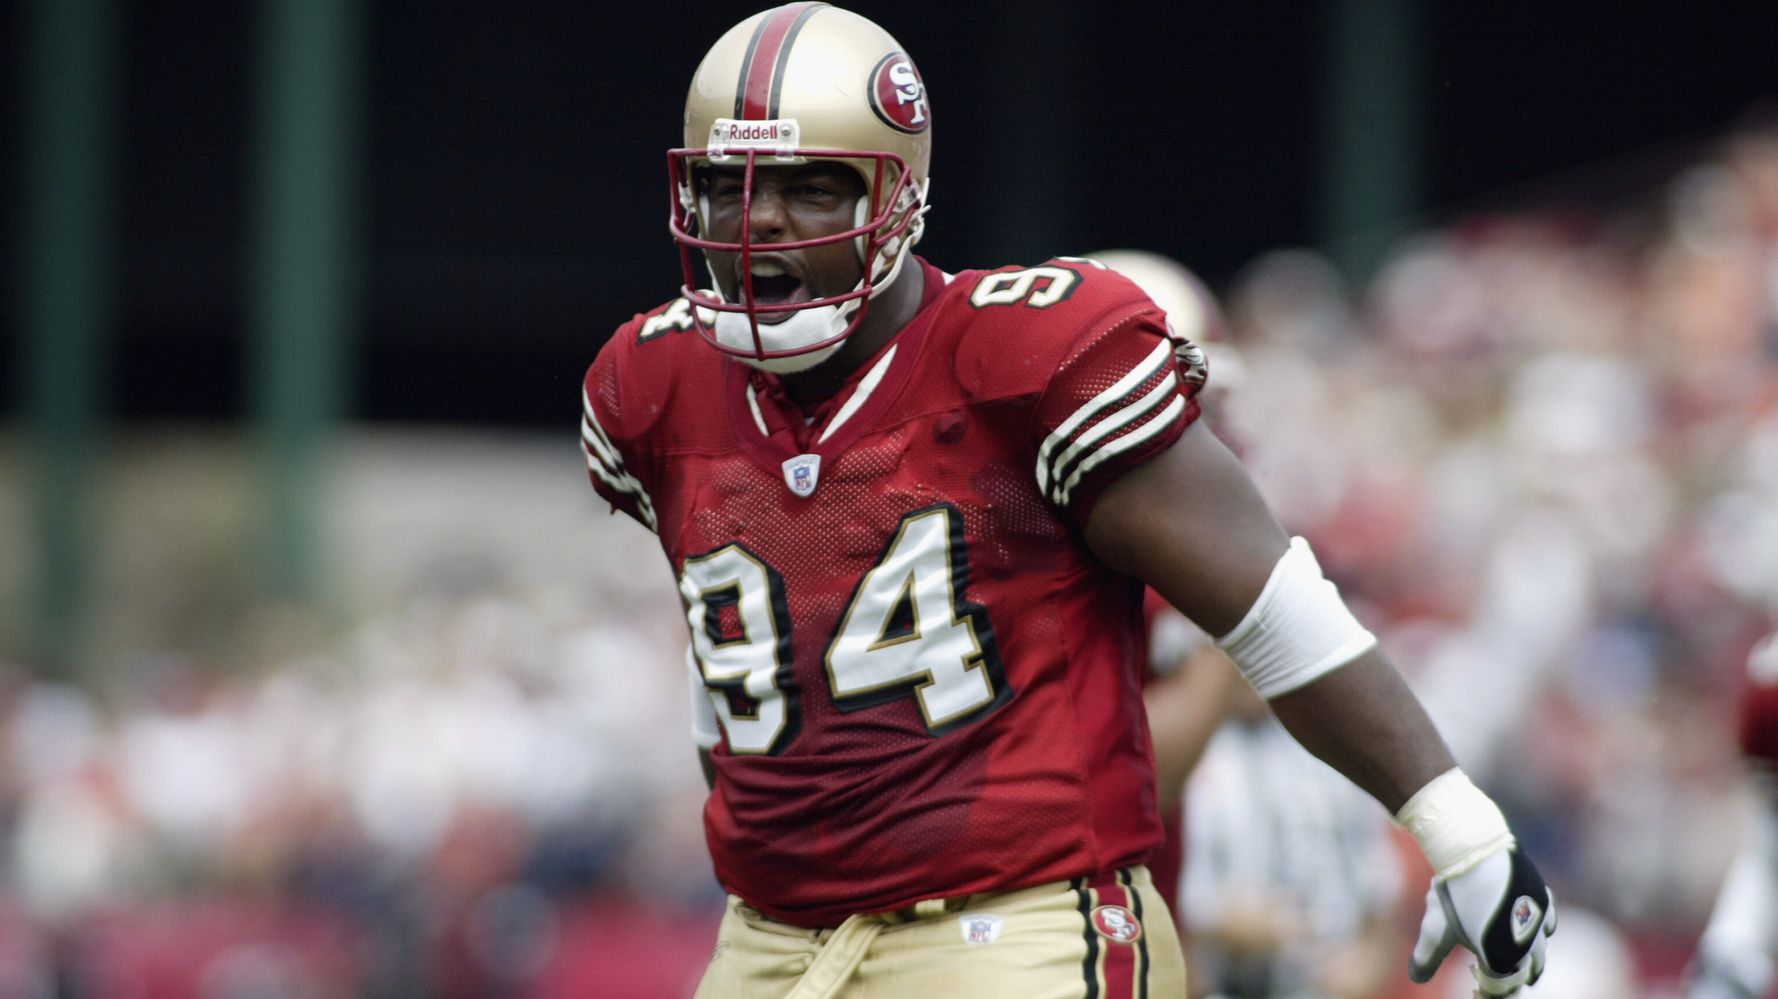 Ex-49ers Star Dana Stubblefield Sentenced To 15 Years To Life For Rape